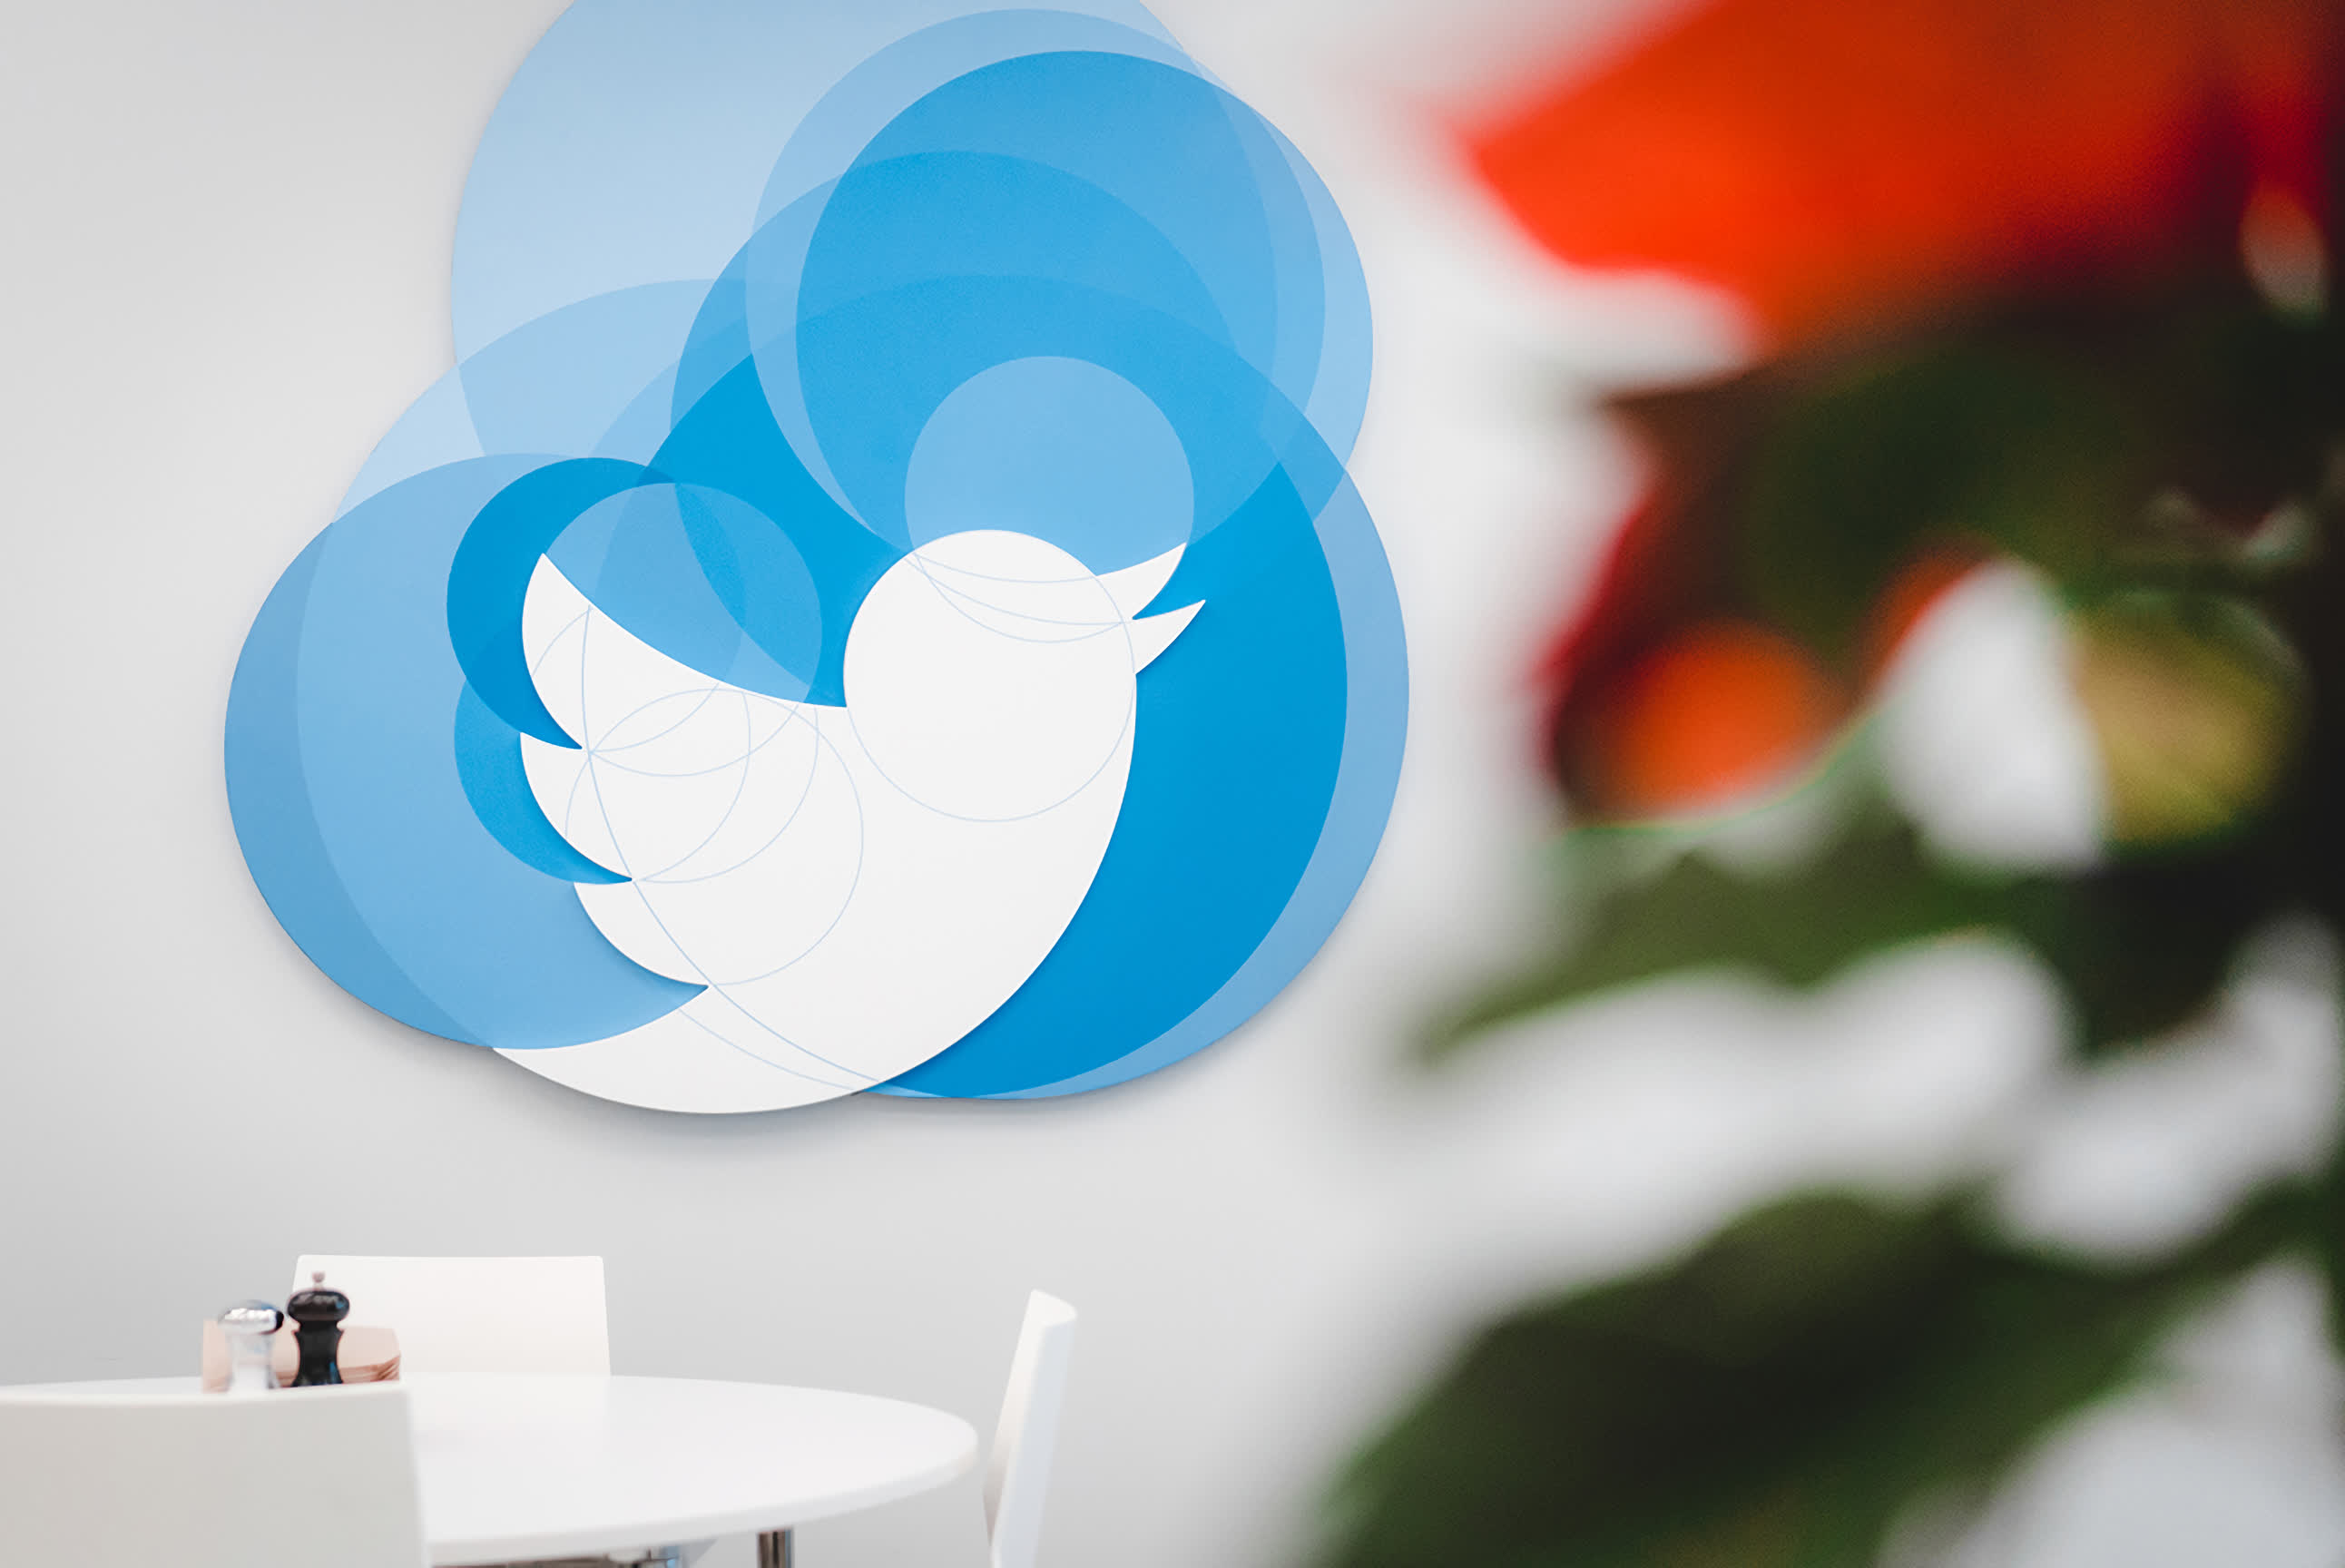 Twitter introduces local weather service called 'Tomorrow'